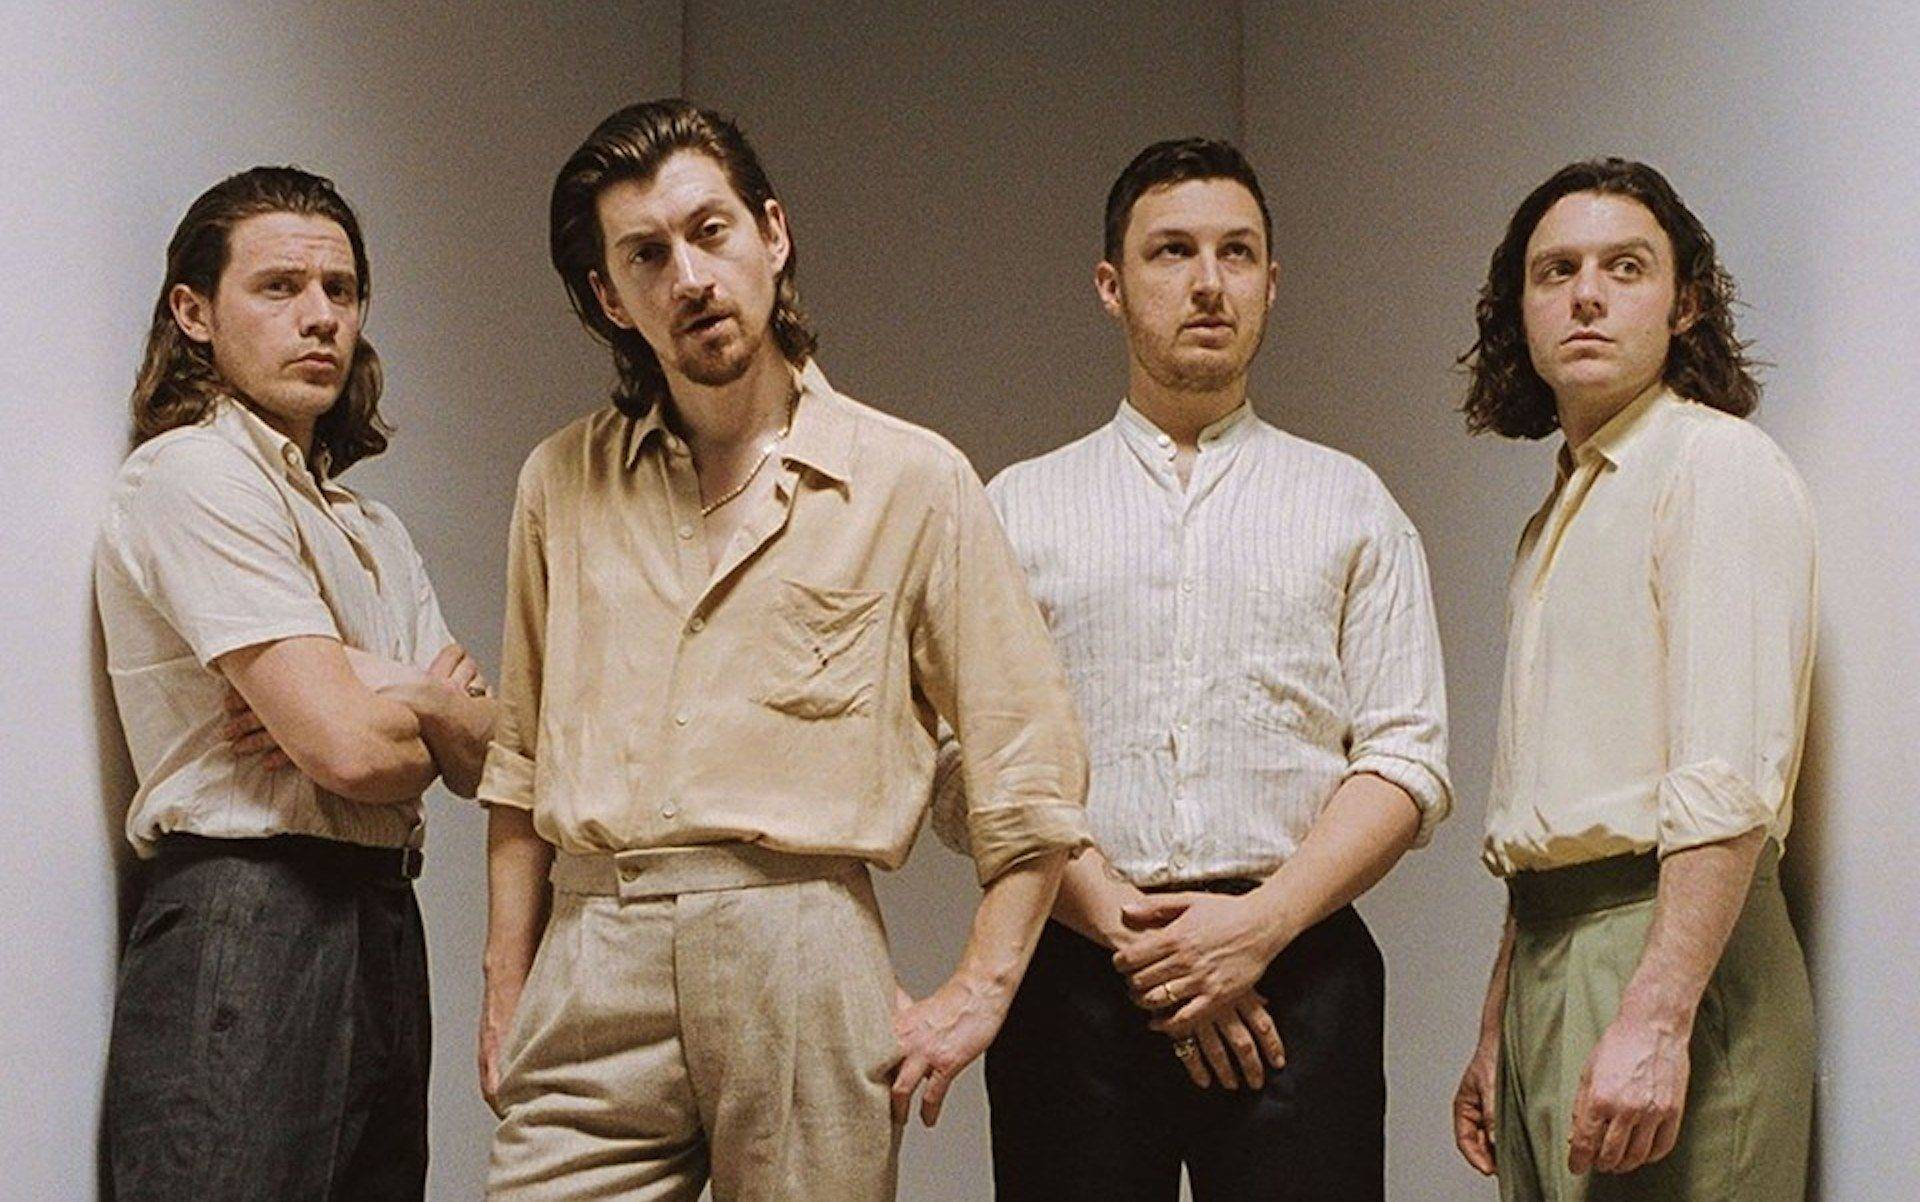 www.juicysantos.com.br - arctic monkeys tranquility base casino and hotel